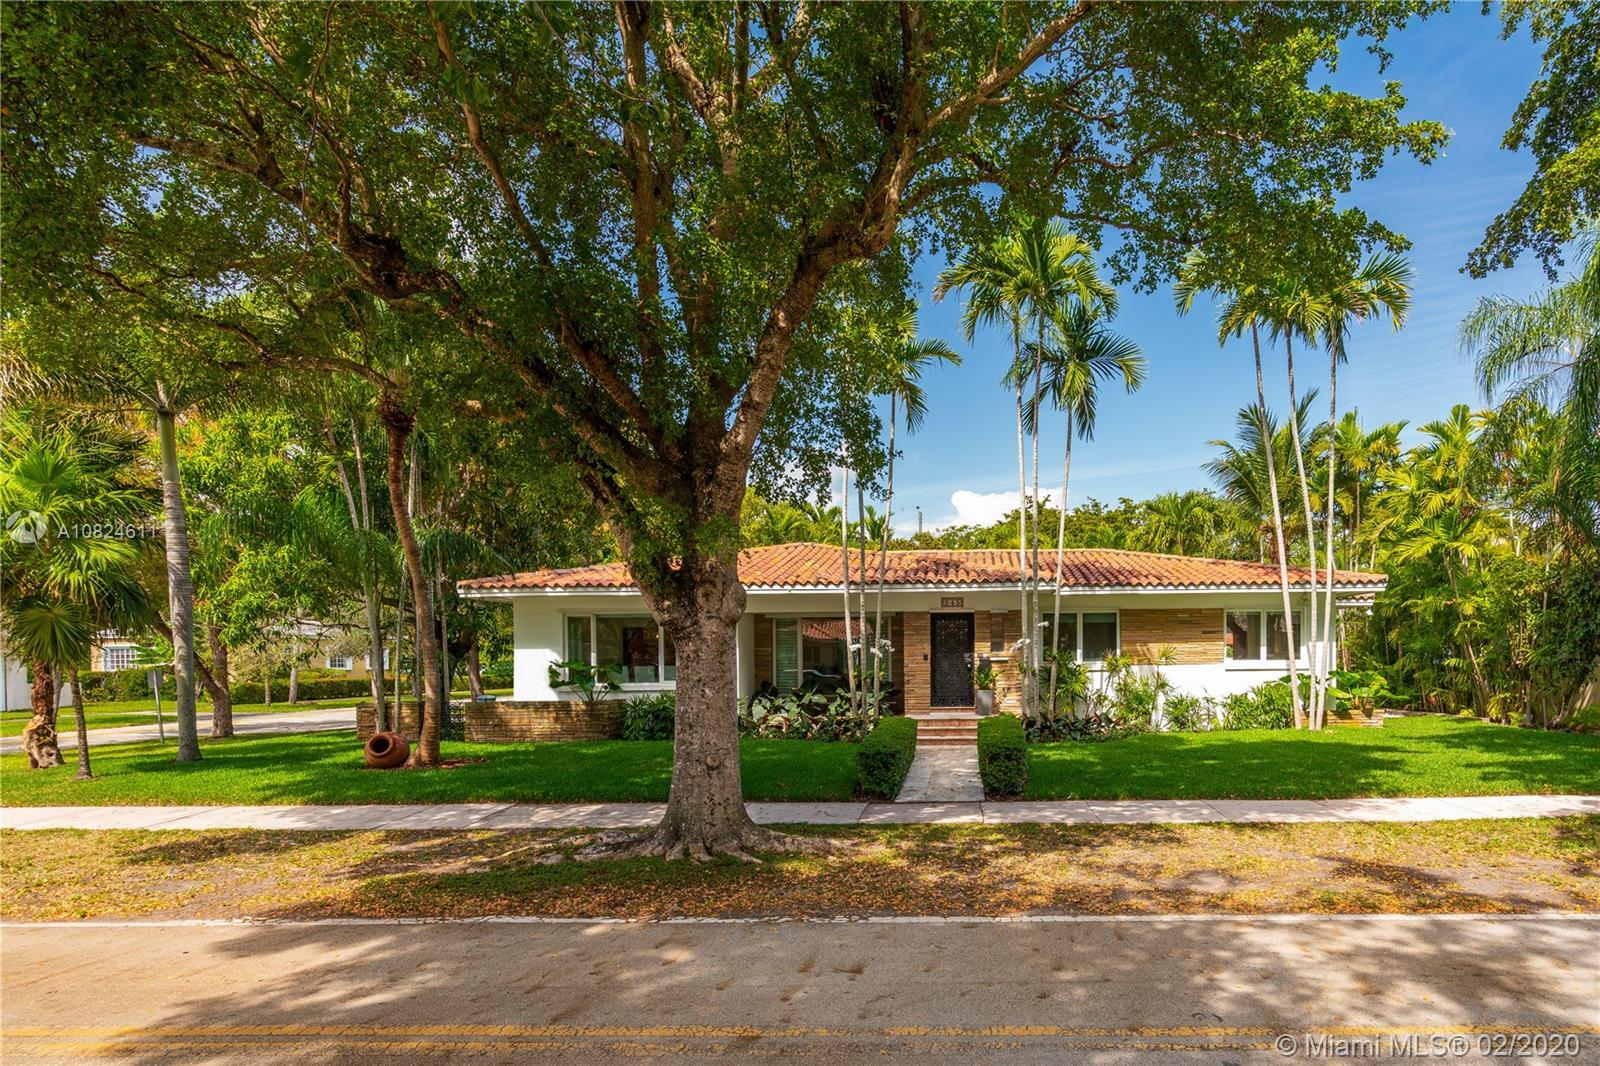 A Mid-century modern Coral Gables home sits on a 10,000' corner lot on a tree-lined street minutes a